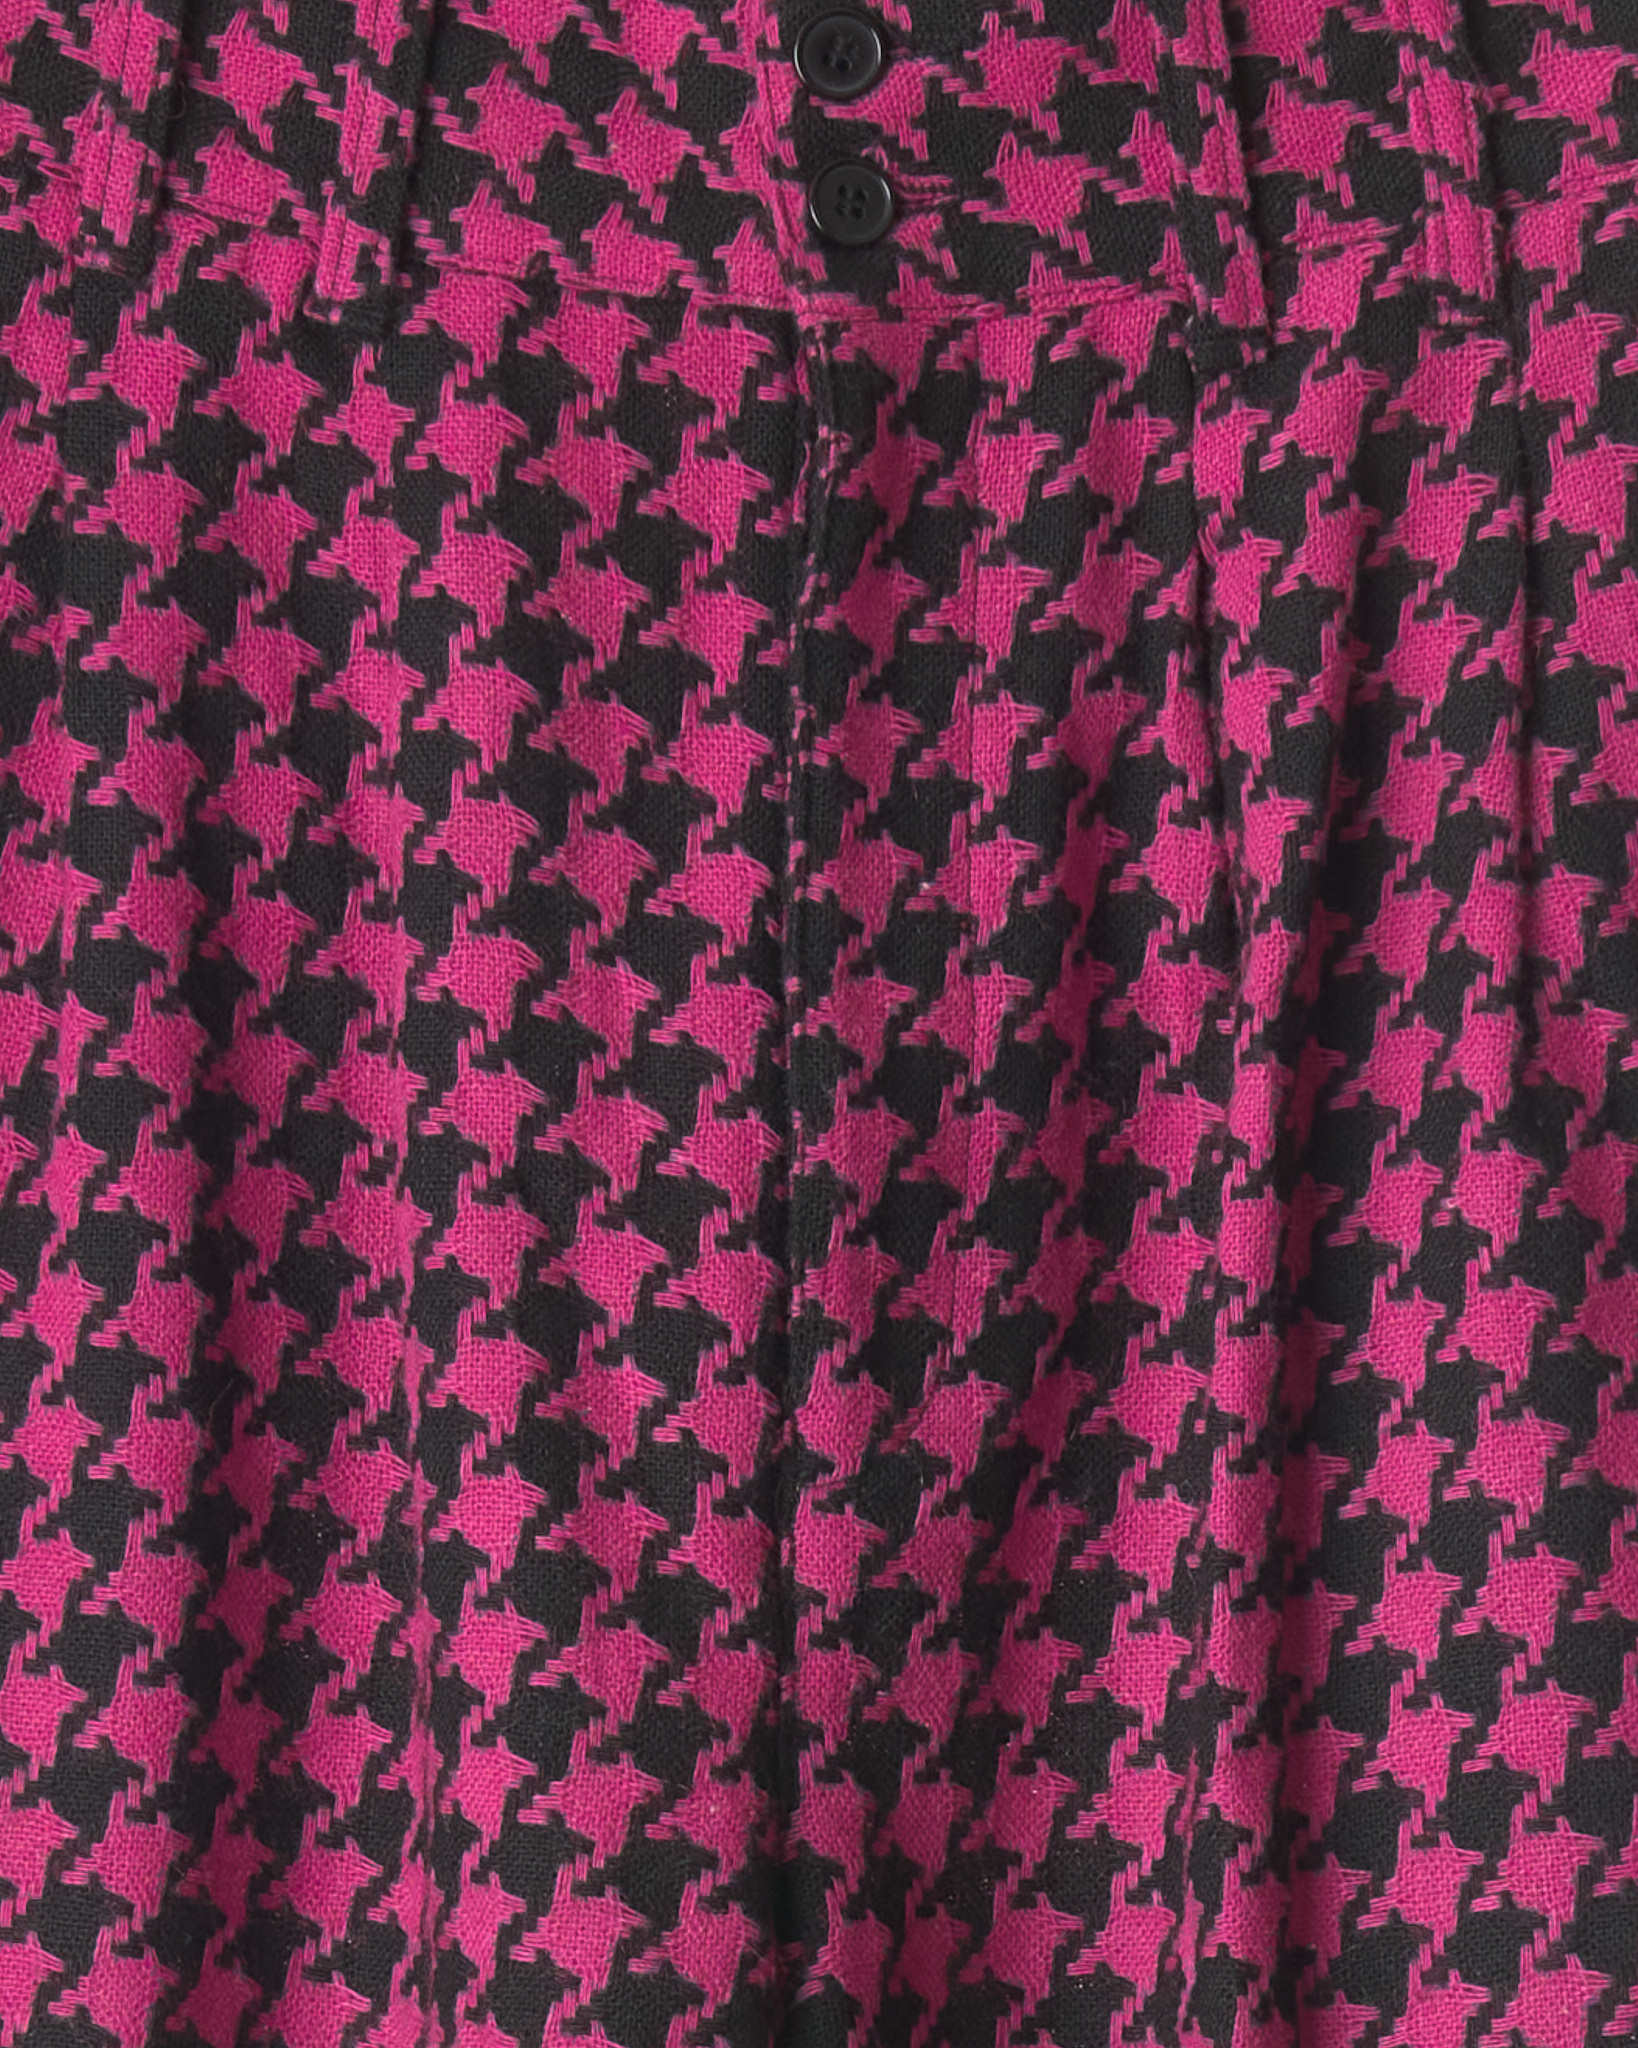 Hot Pink Houndstooth Vintage Trousers